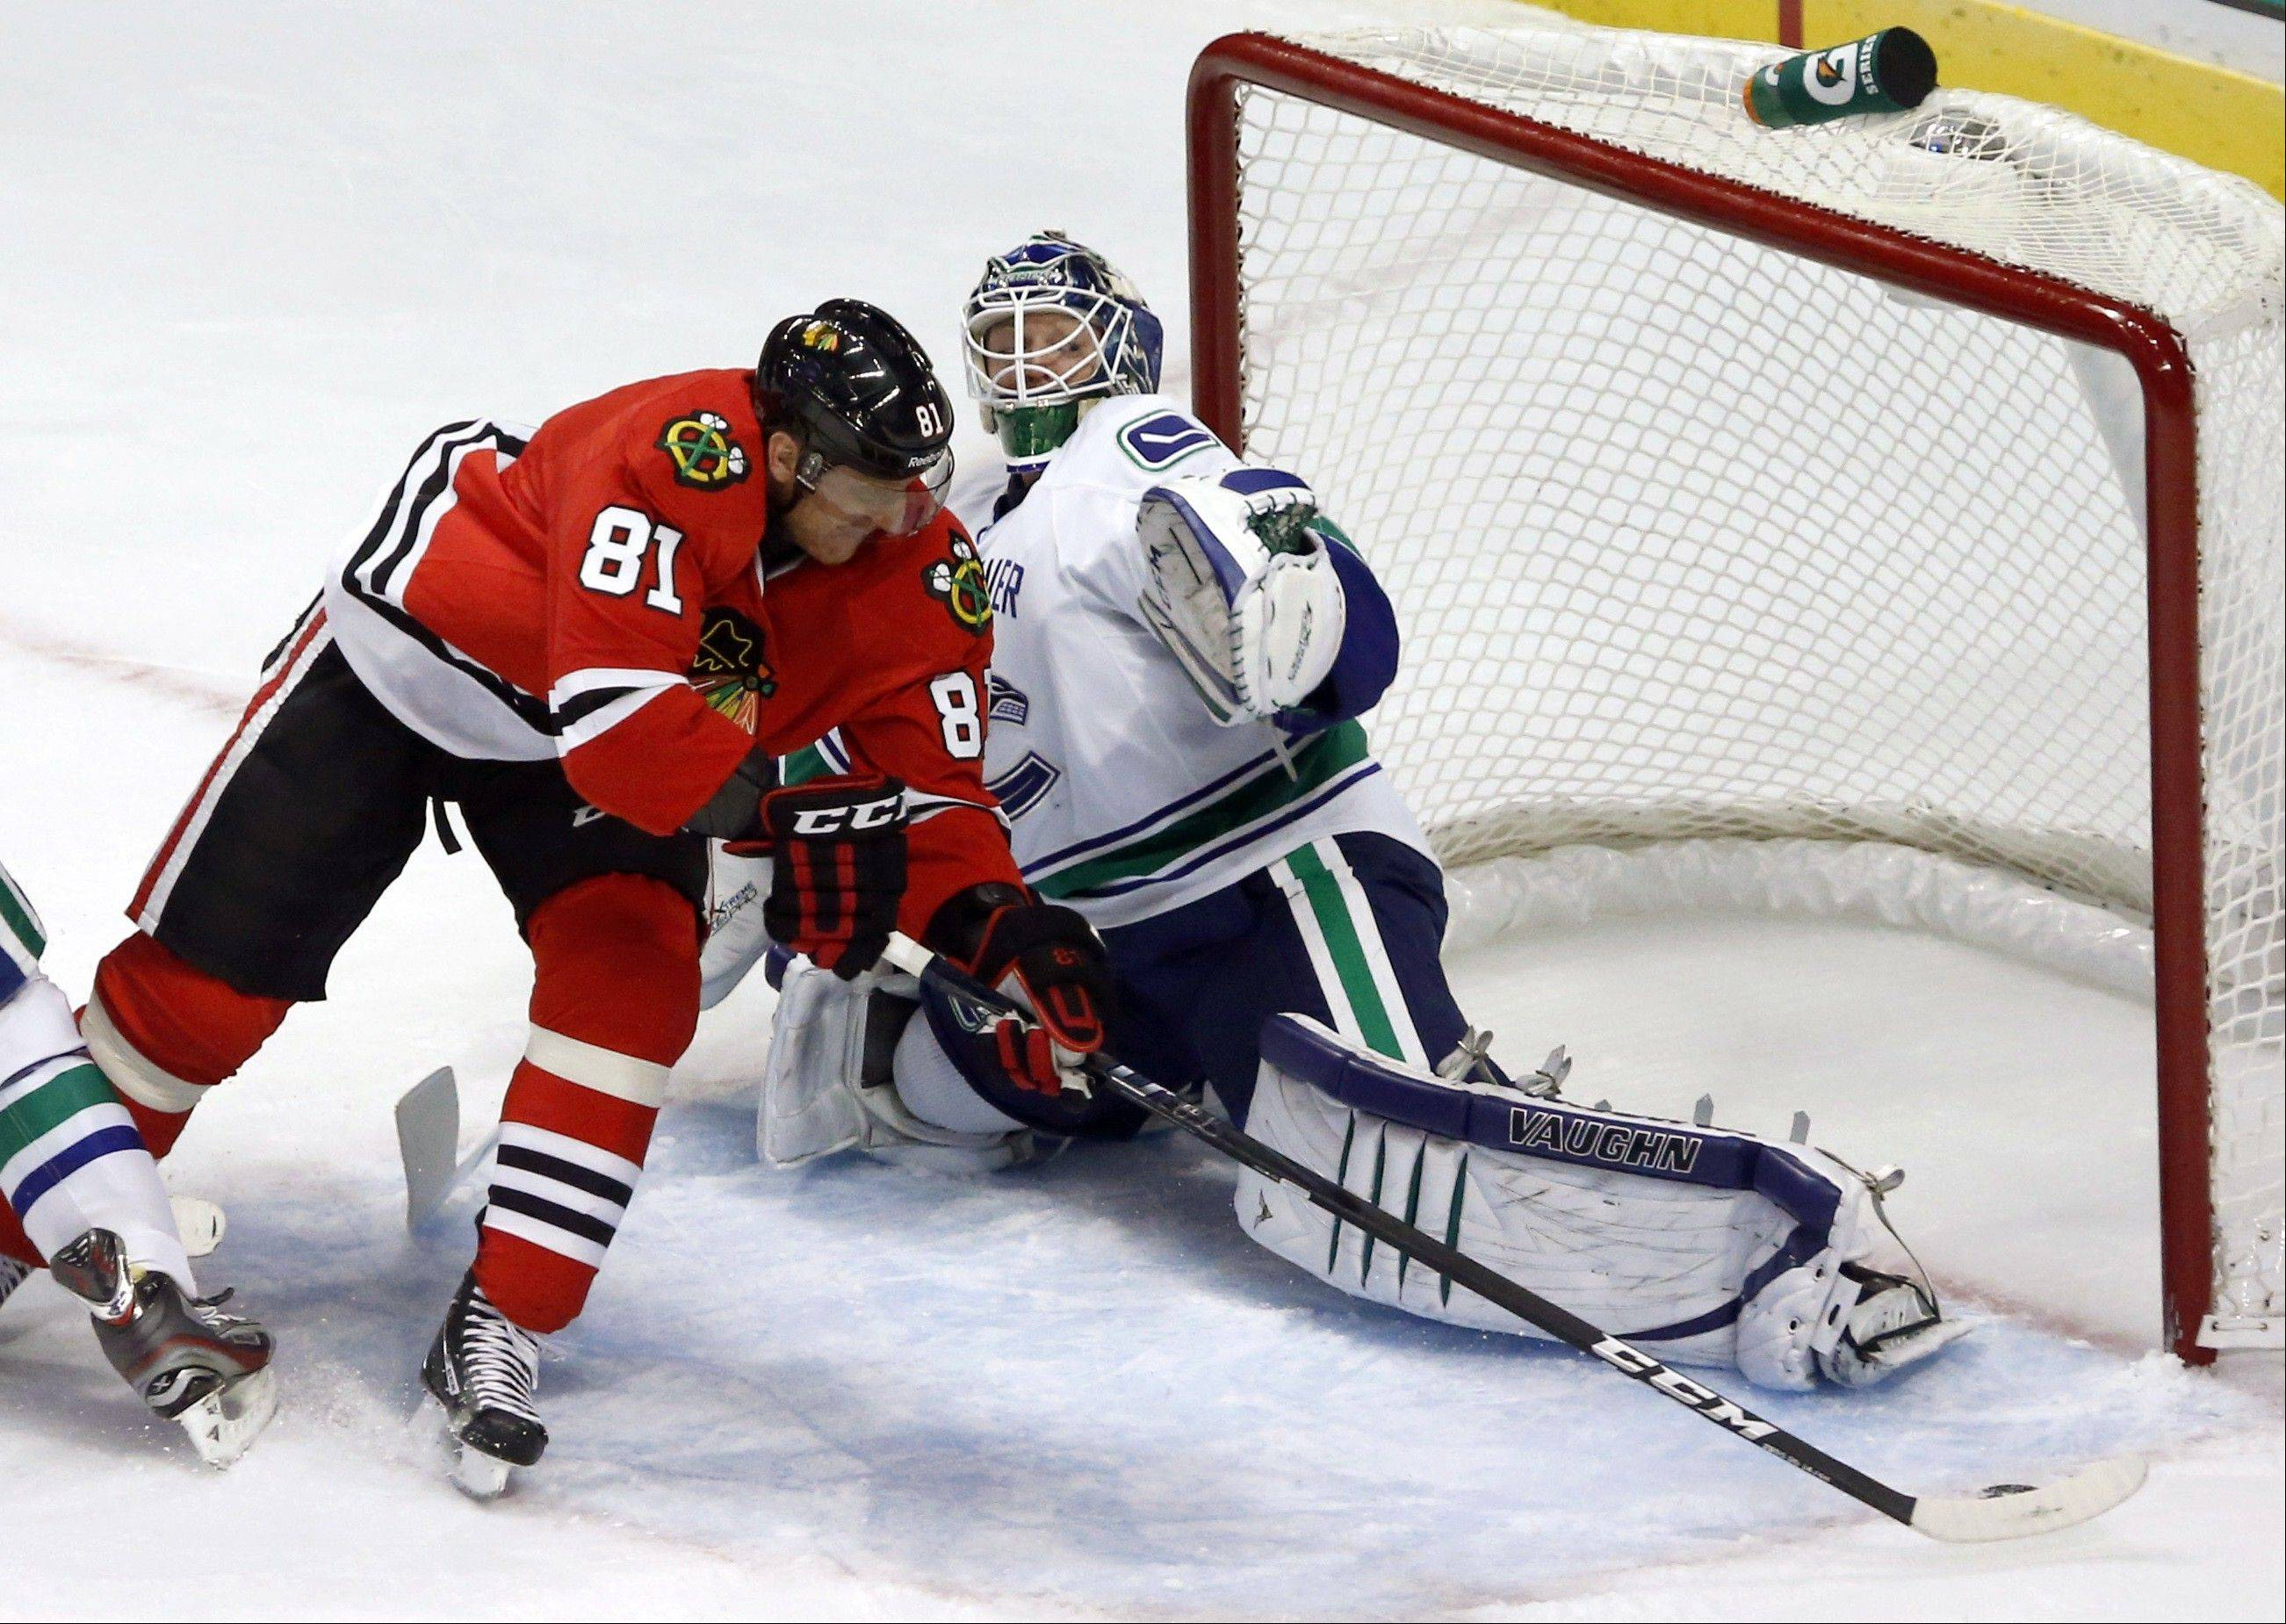 Chicago Blackhawks right wing Marian Hossa skates past Vancouver Canucks goalie Cory Schneider to score his second goal in the second period.